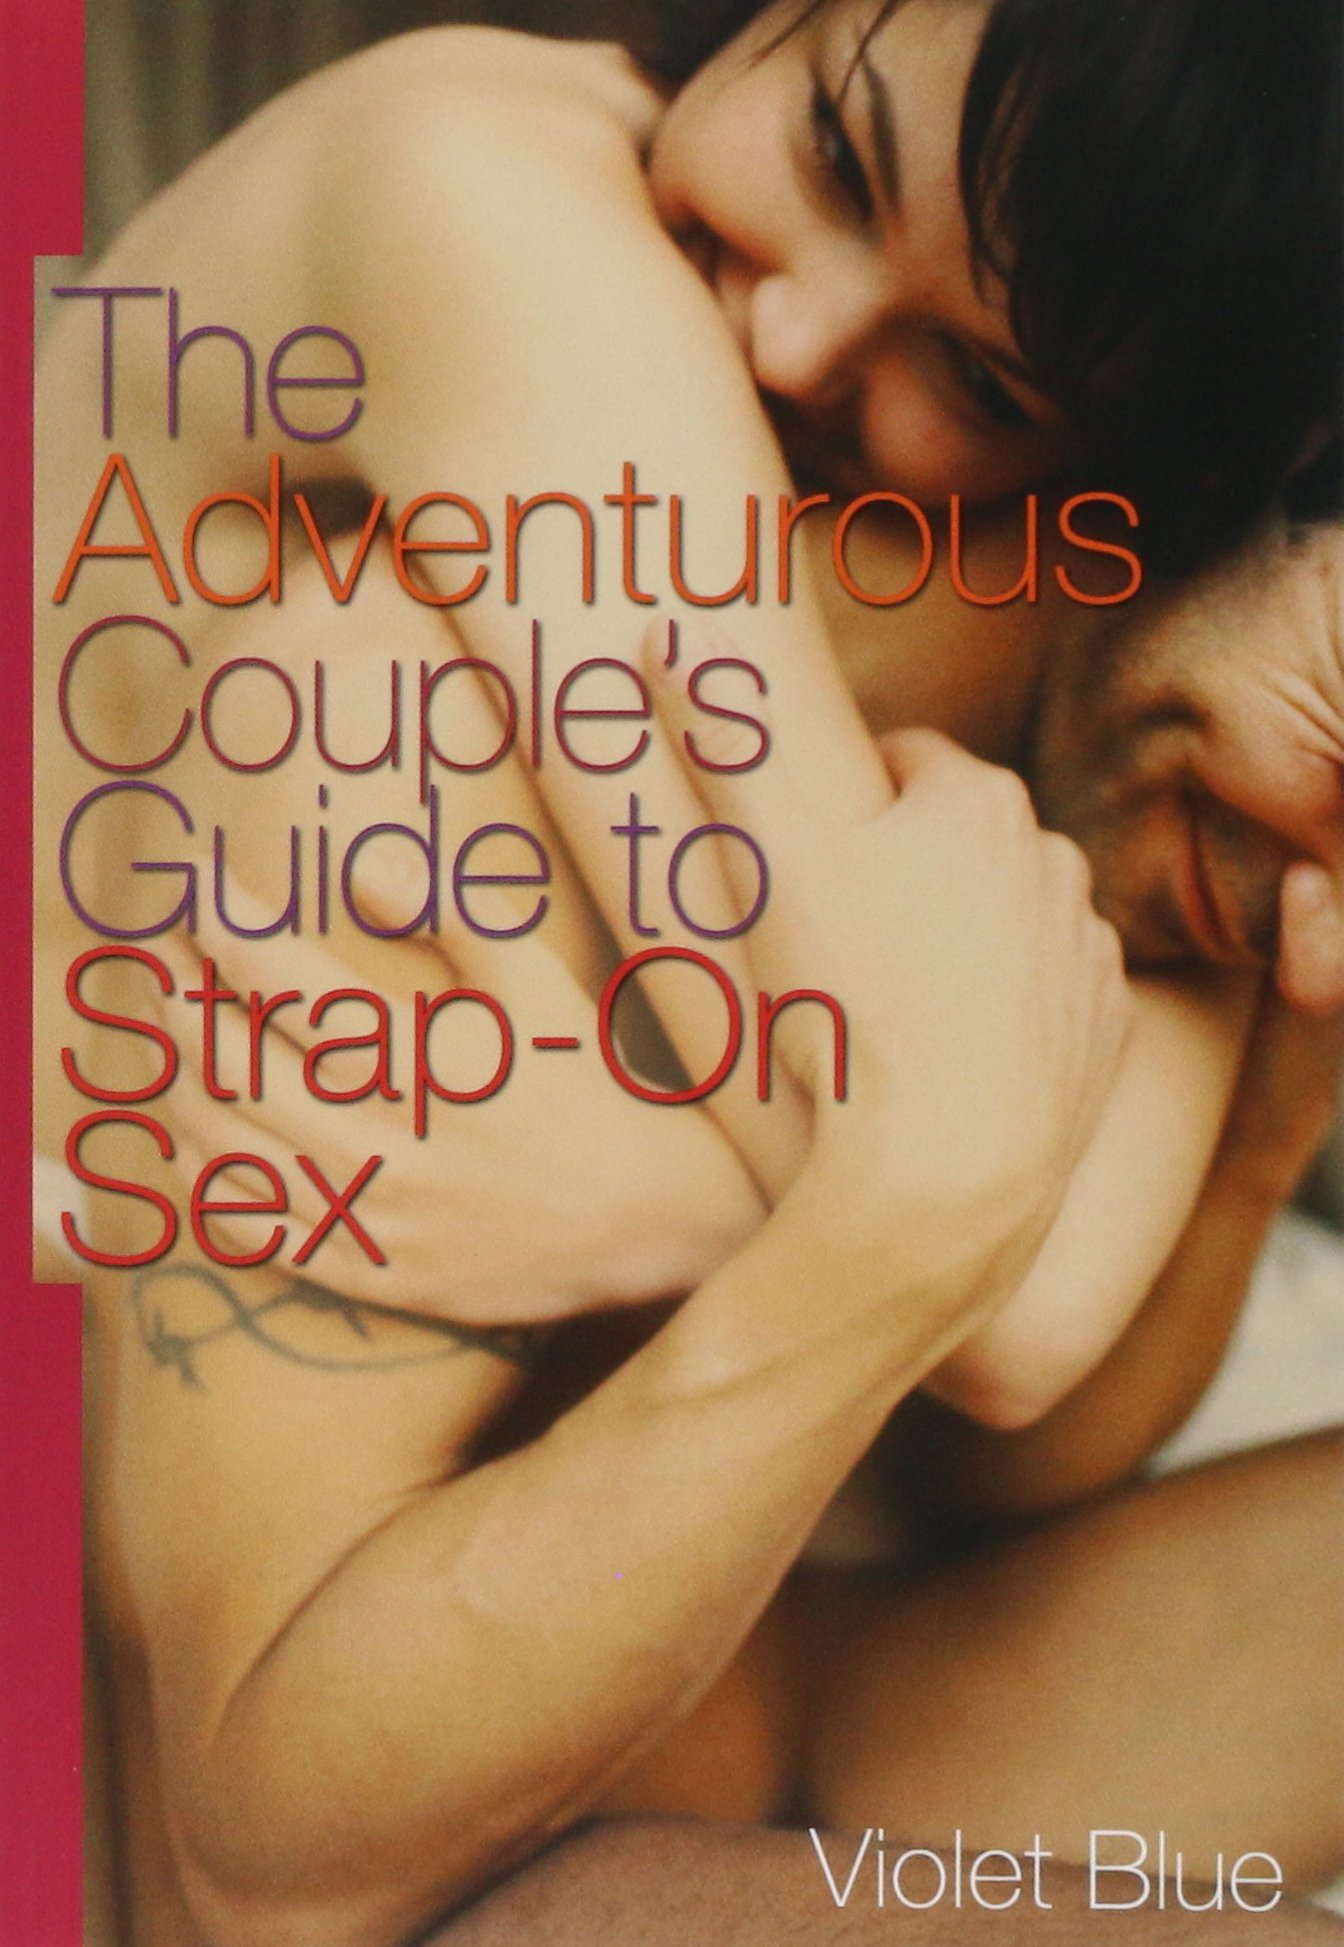 The Adventurous Couple's Guide to Strap-On Sex pdf